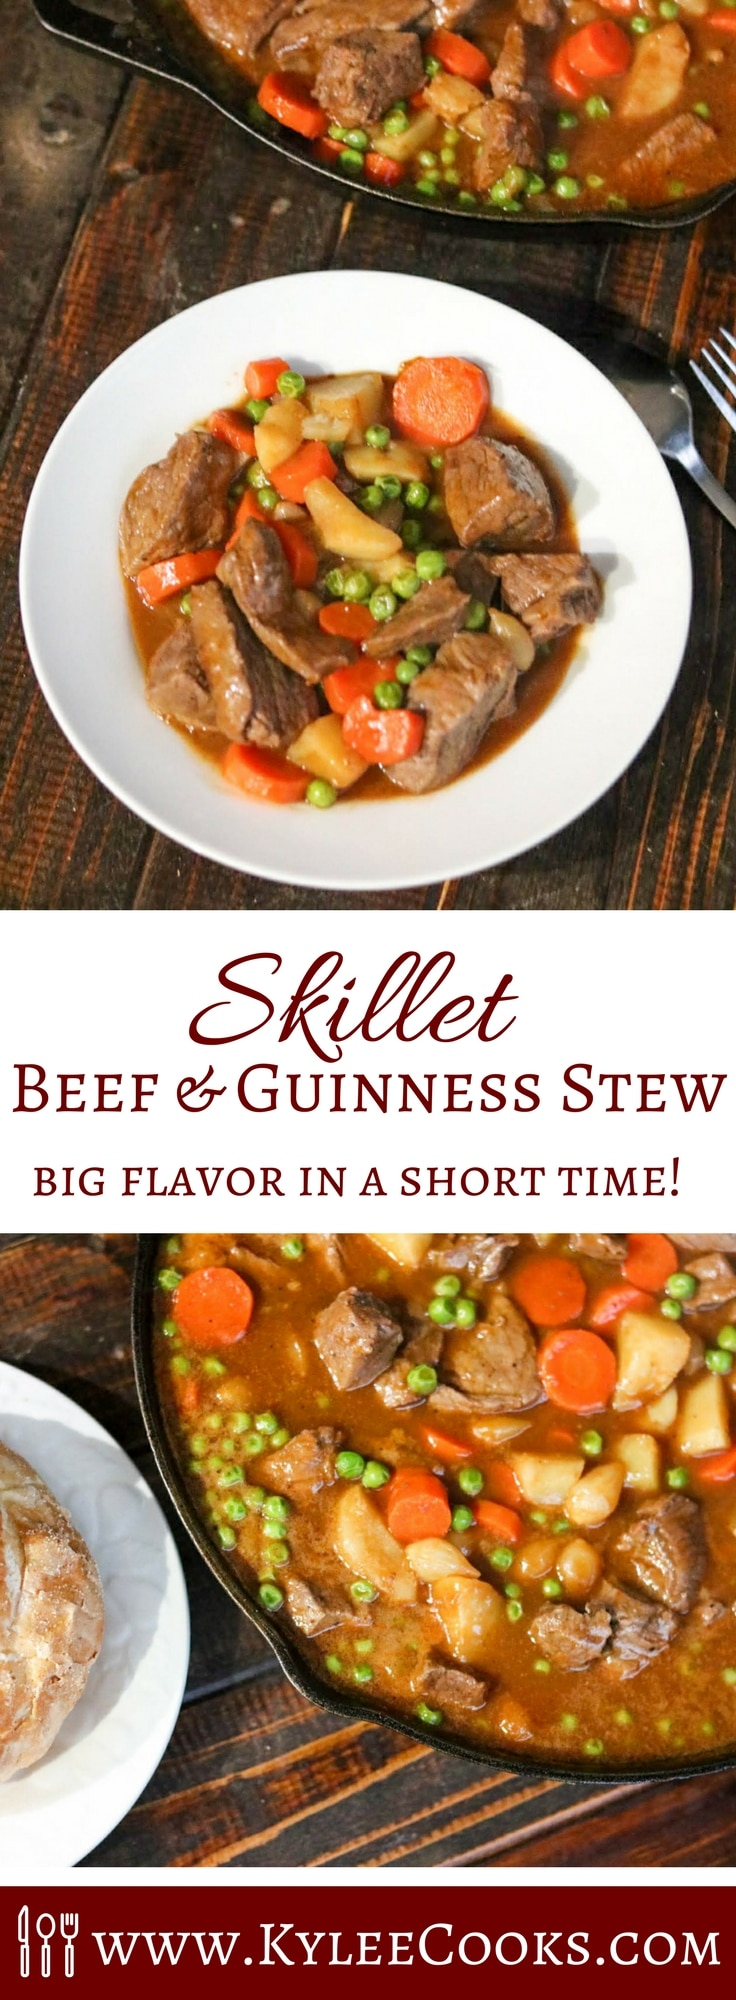 All the delicious flavor of a slow cooked stew, made simpler by using just one skillet. This Beef & Guinness Stew is rich and flavorful and perfect for dinner tonight! #skillet #beef #stew #stpatricksday #recipe